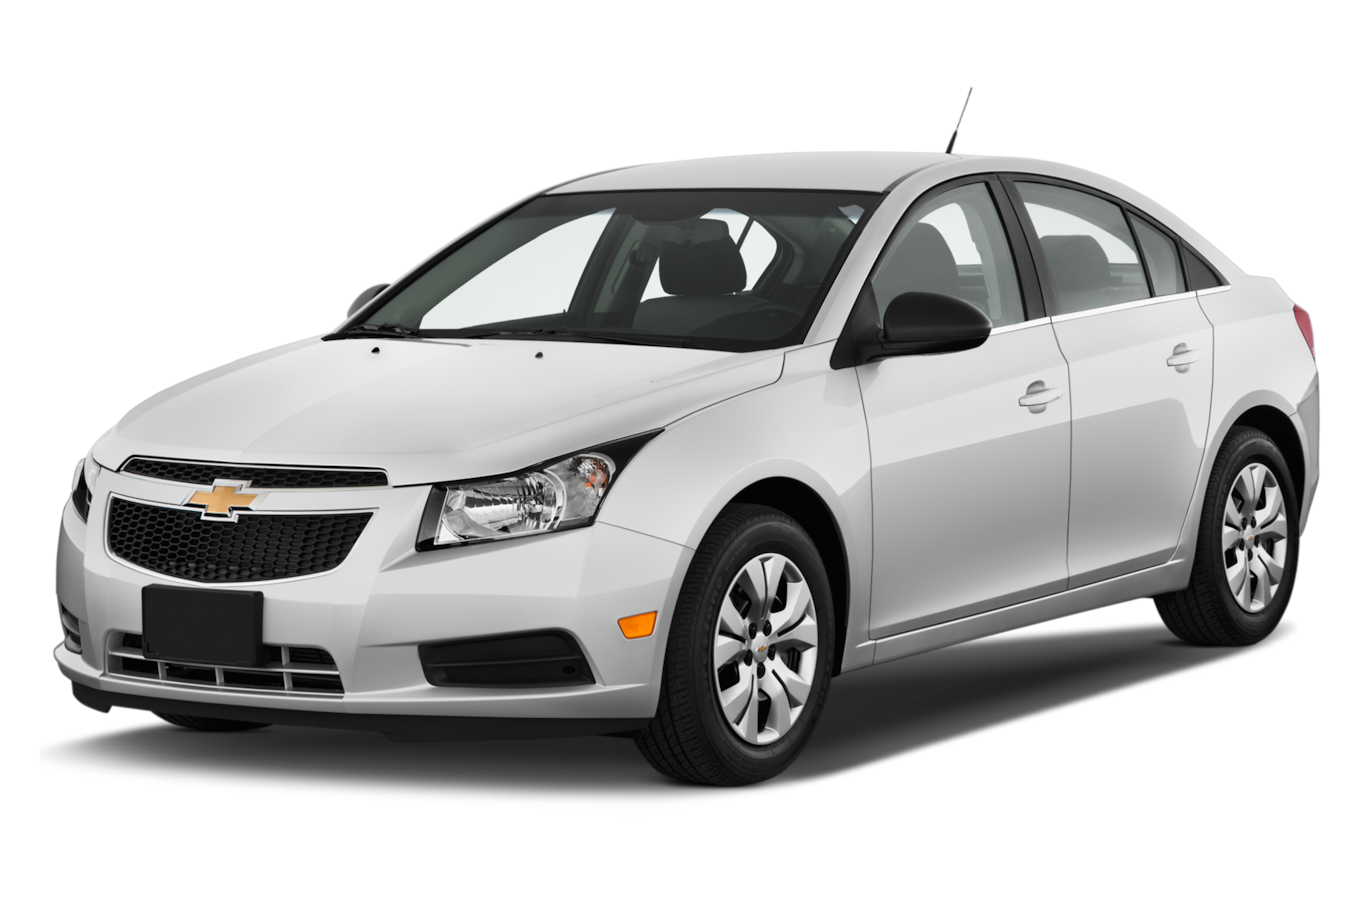 small resolution of 2014 chevrolet cruze reviews research cruze prices specs diagram likewise chevy cruze 1 4 turbo engine in addition ecotec